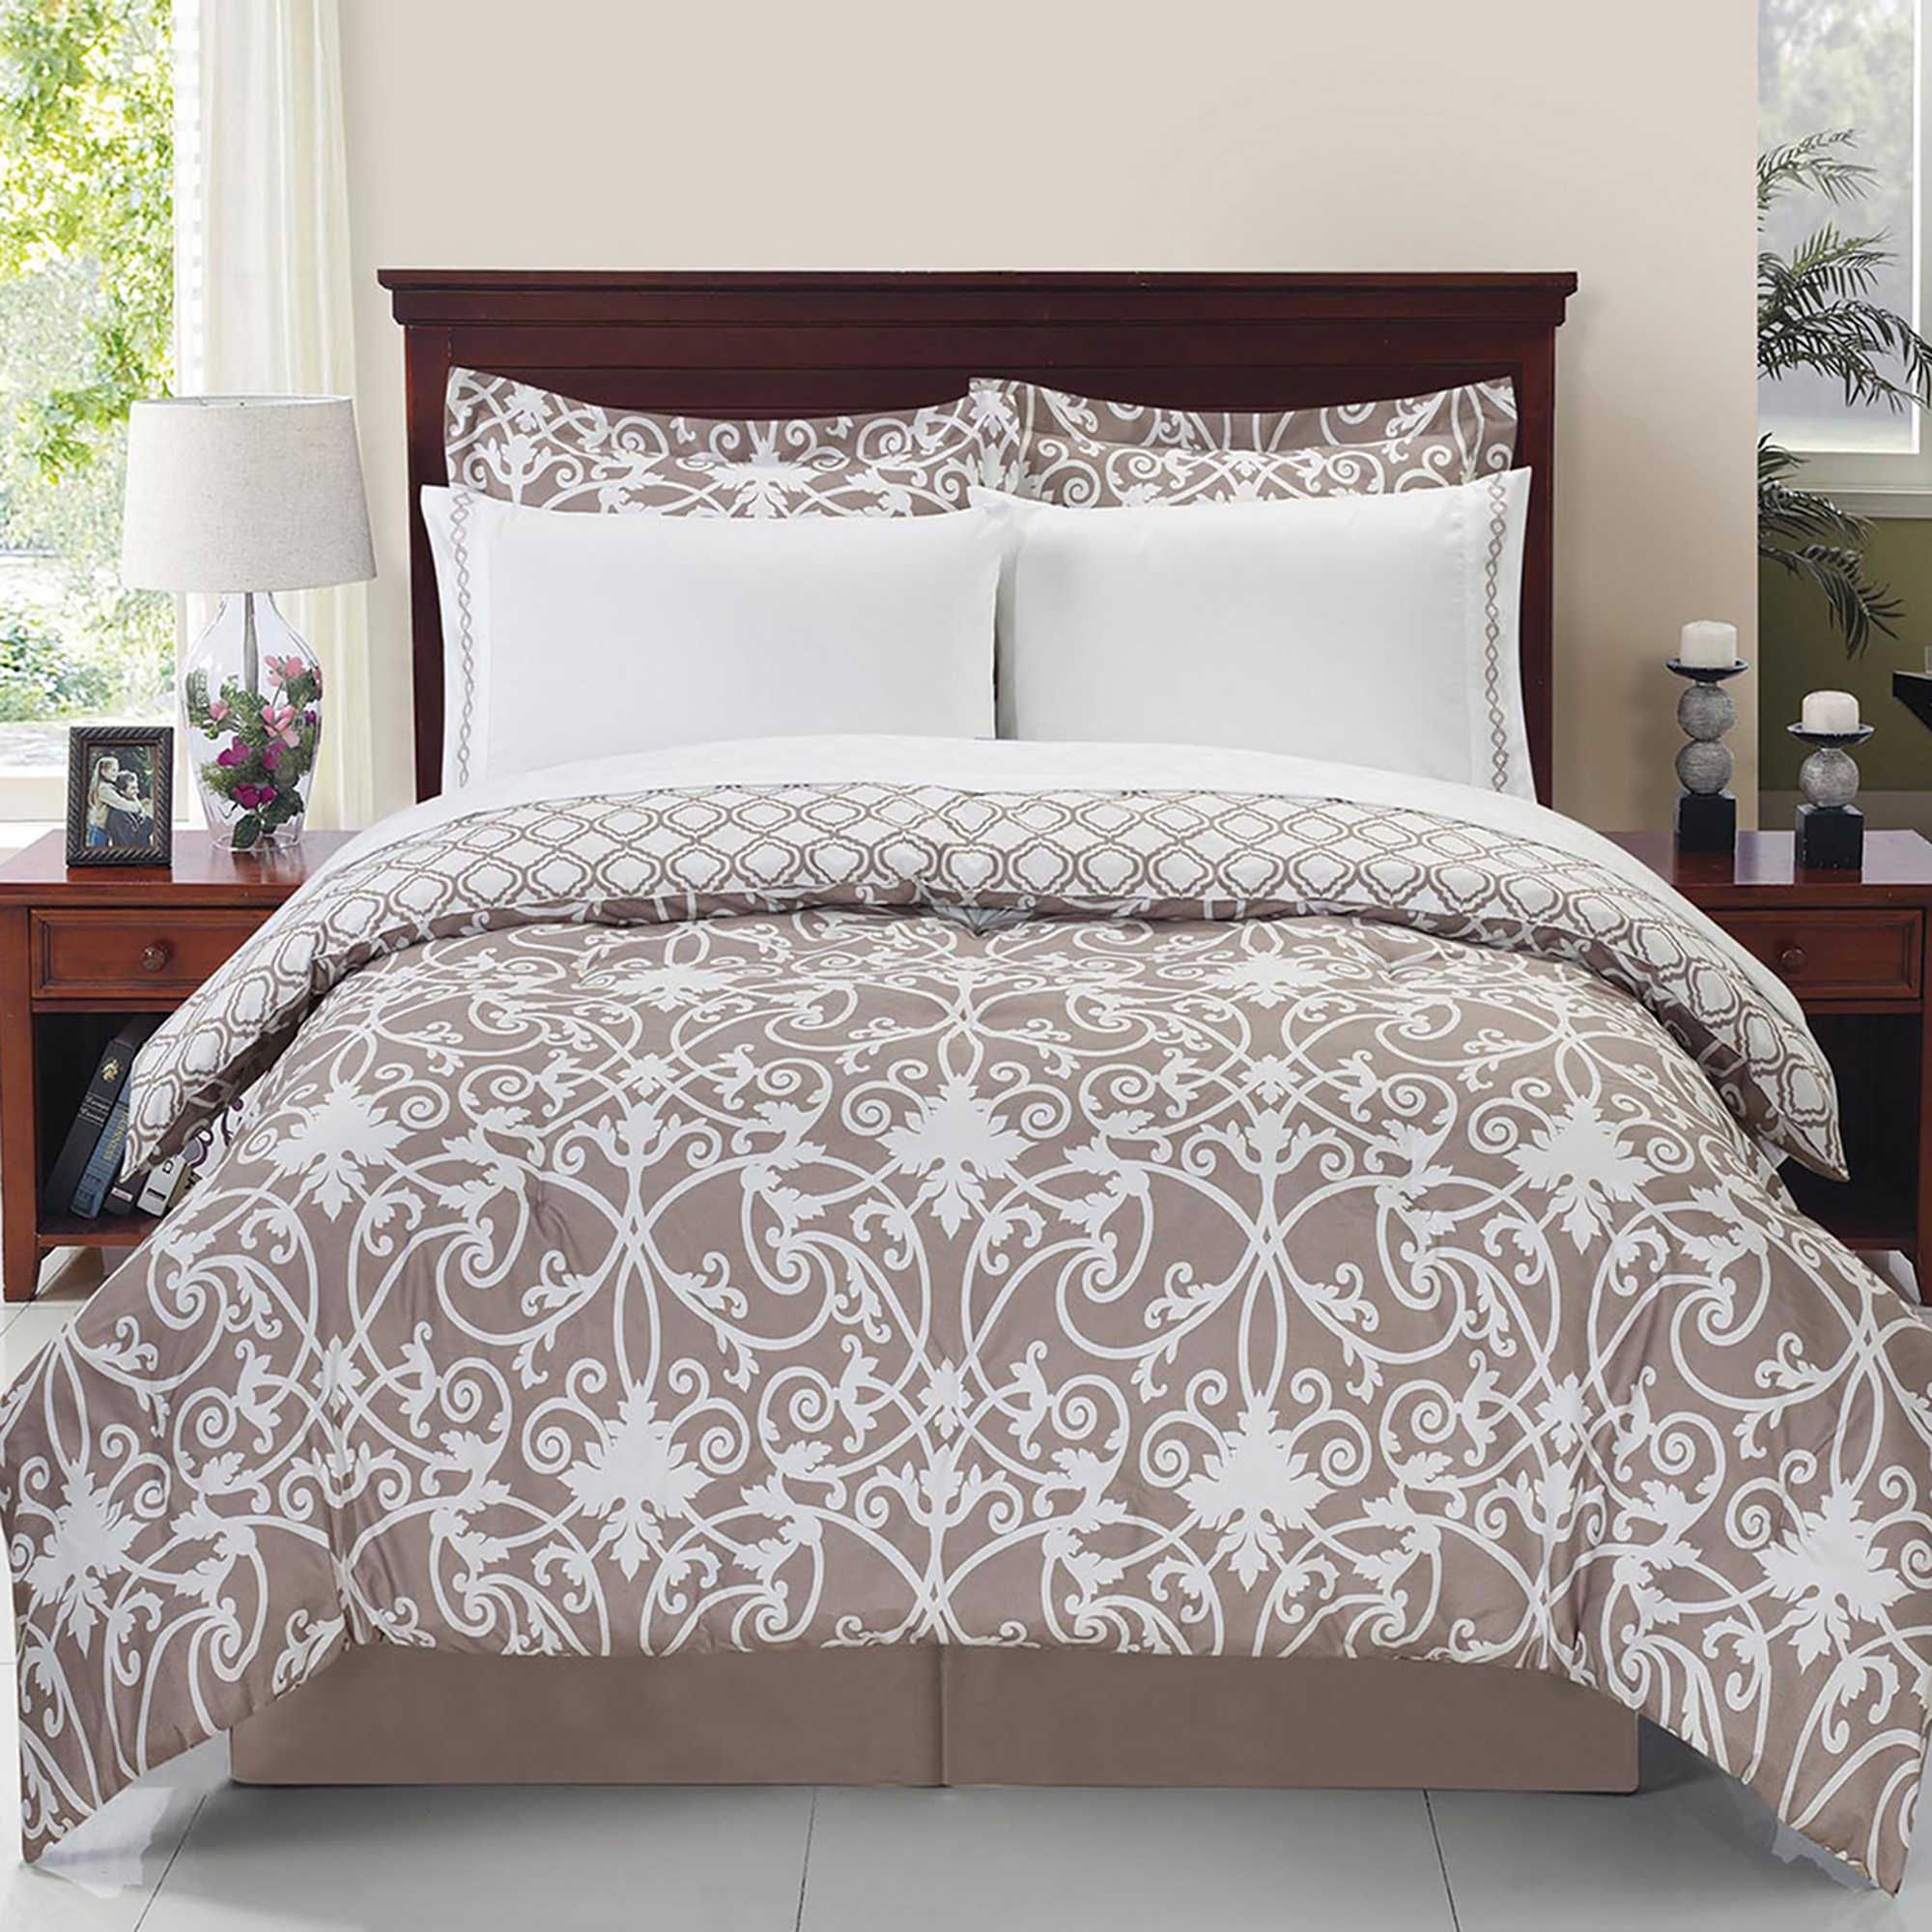 Solano 8 Piece Reversible Queen Comforter Set In Taupewhite